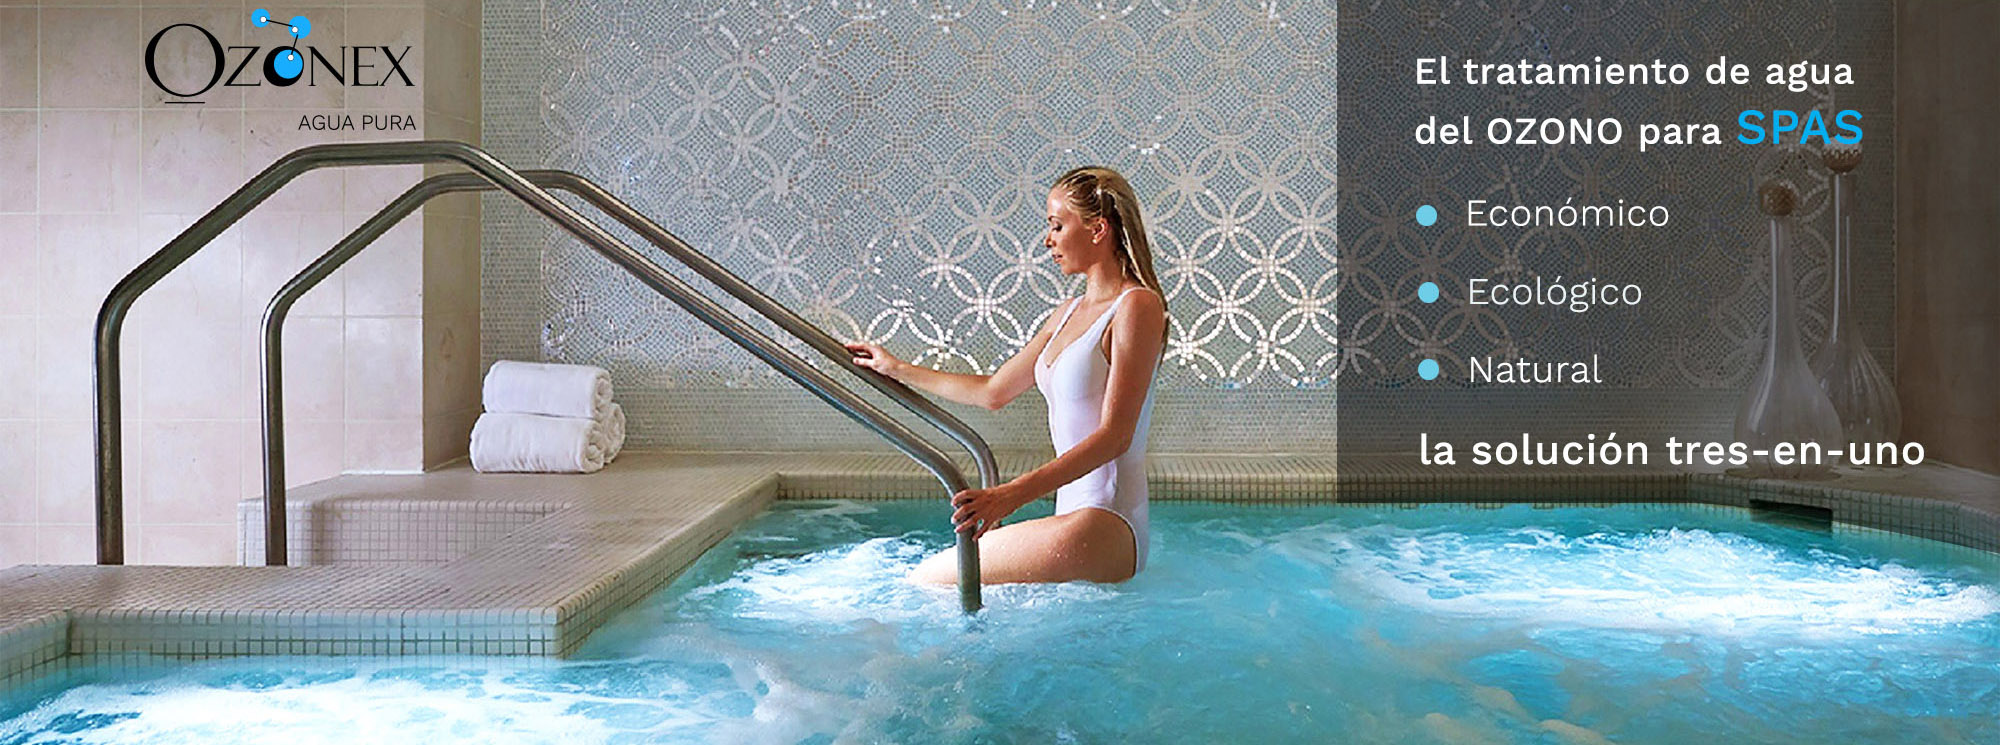 water treatment for spas ozone